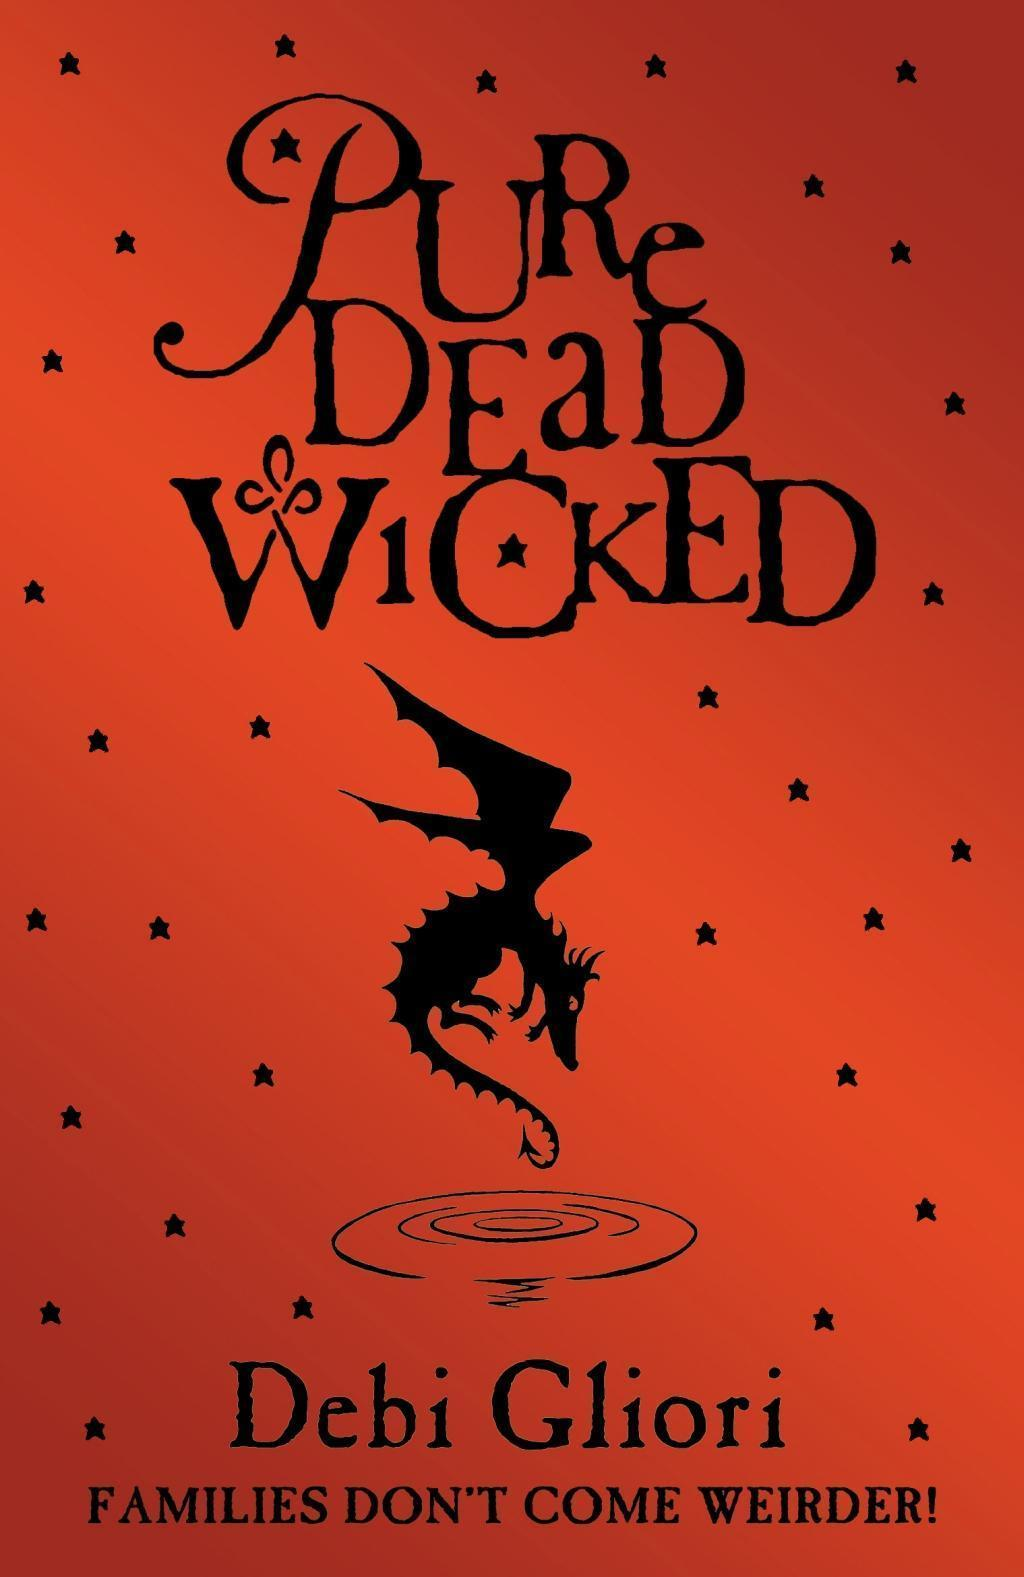 Pure Dead Wicked